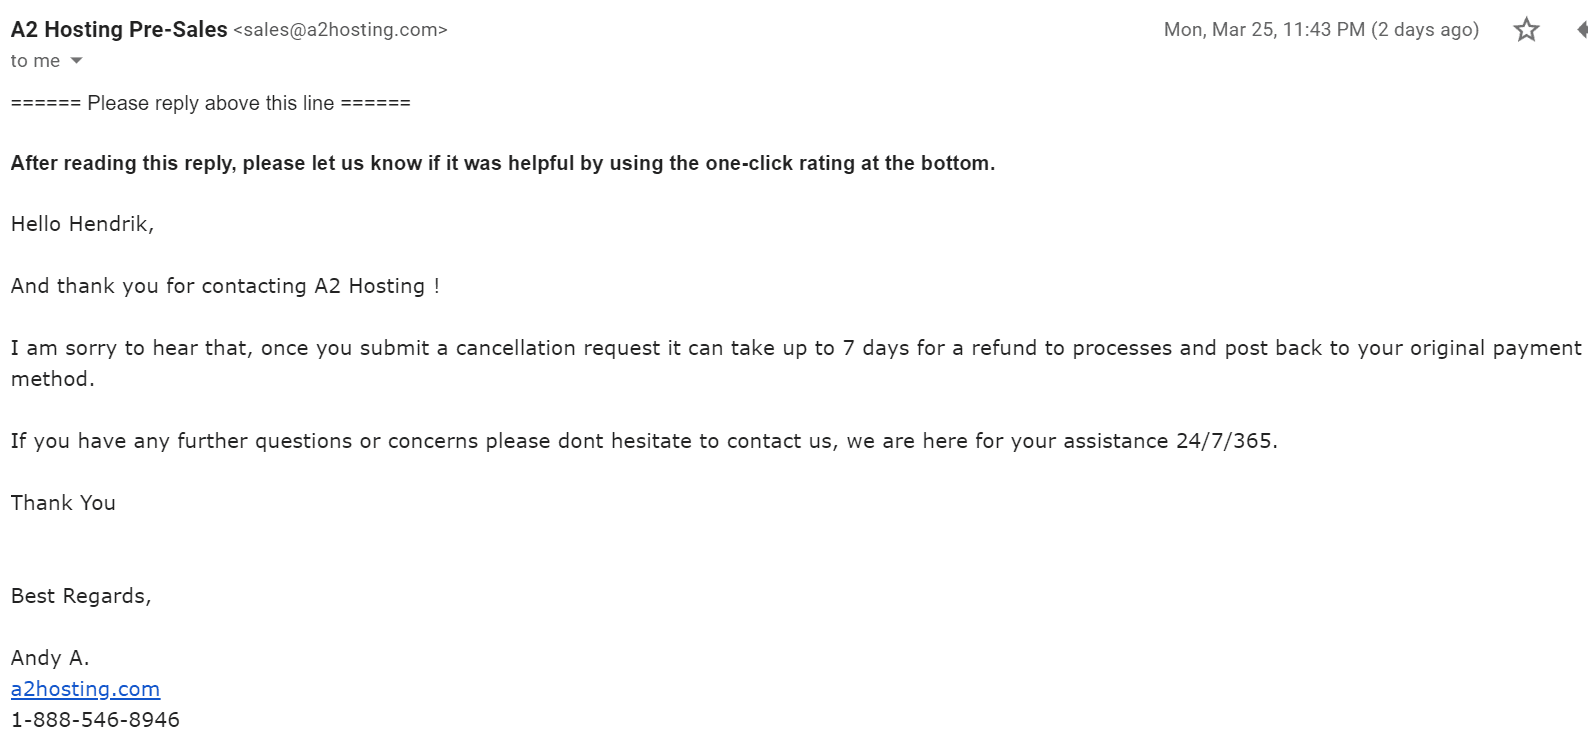 How to Cancel Your A2 Hosting Account and Get a Refund-image7